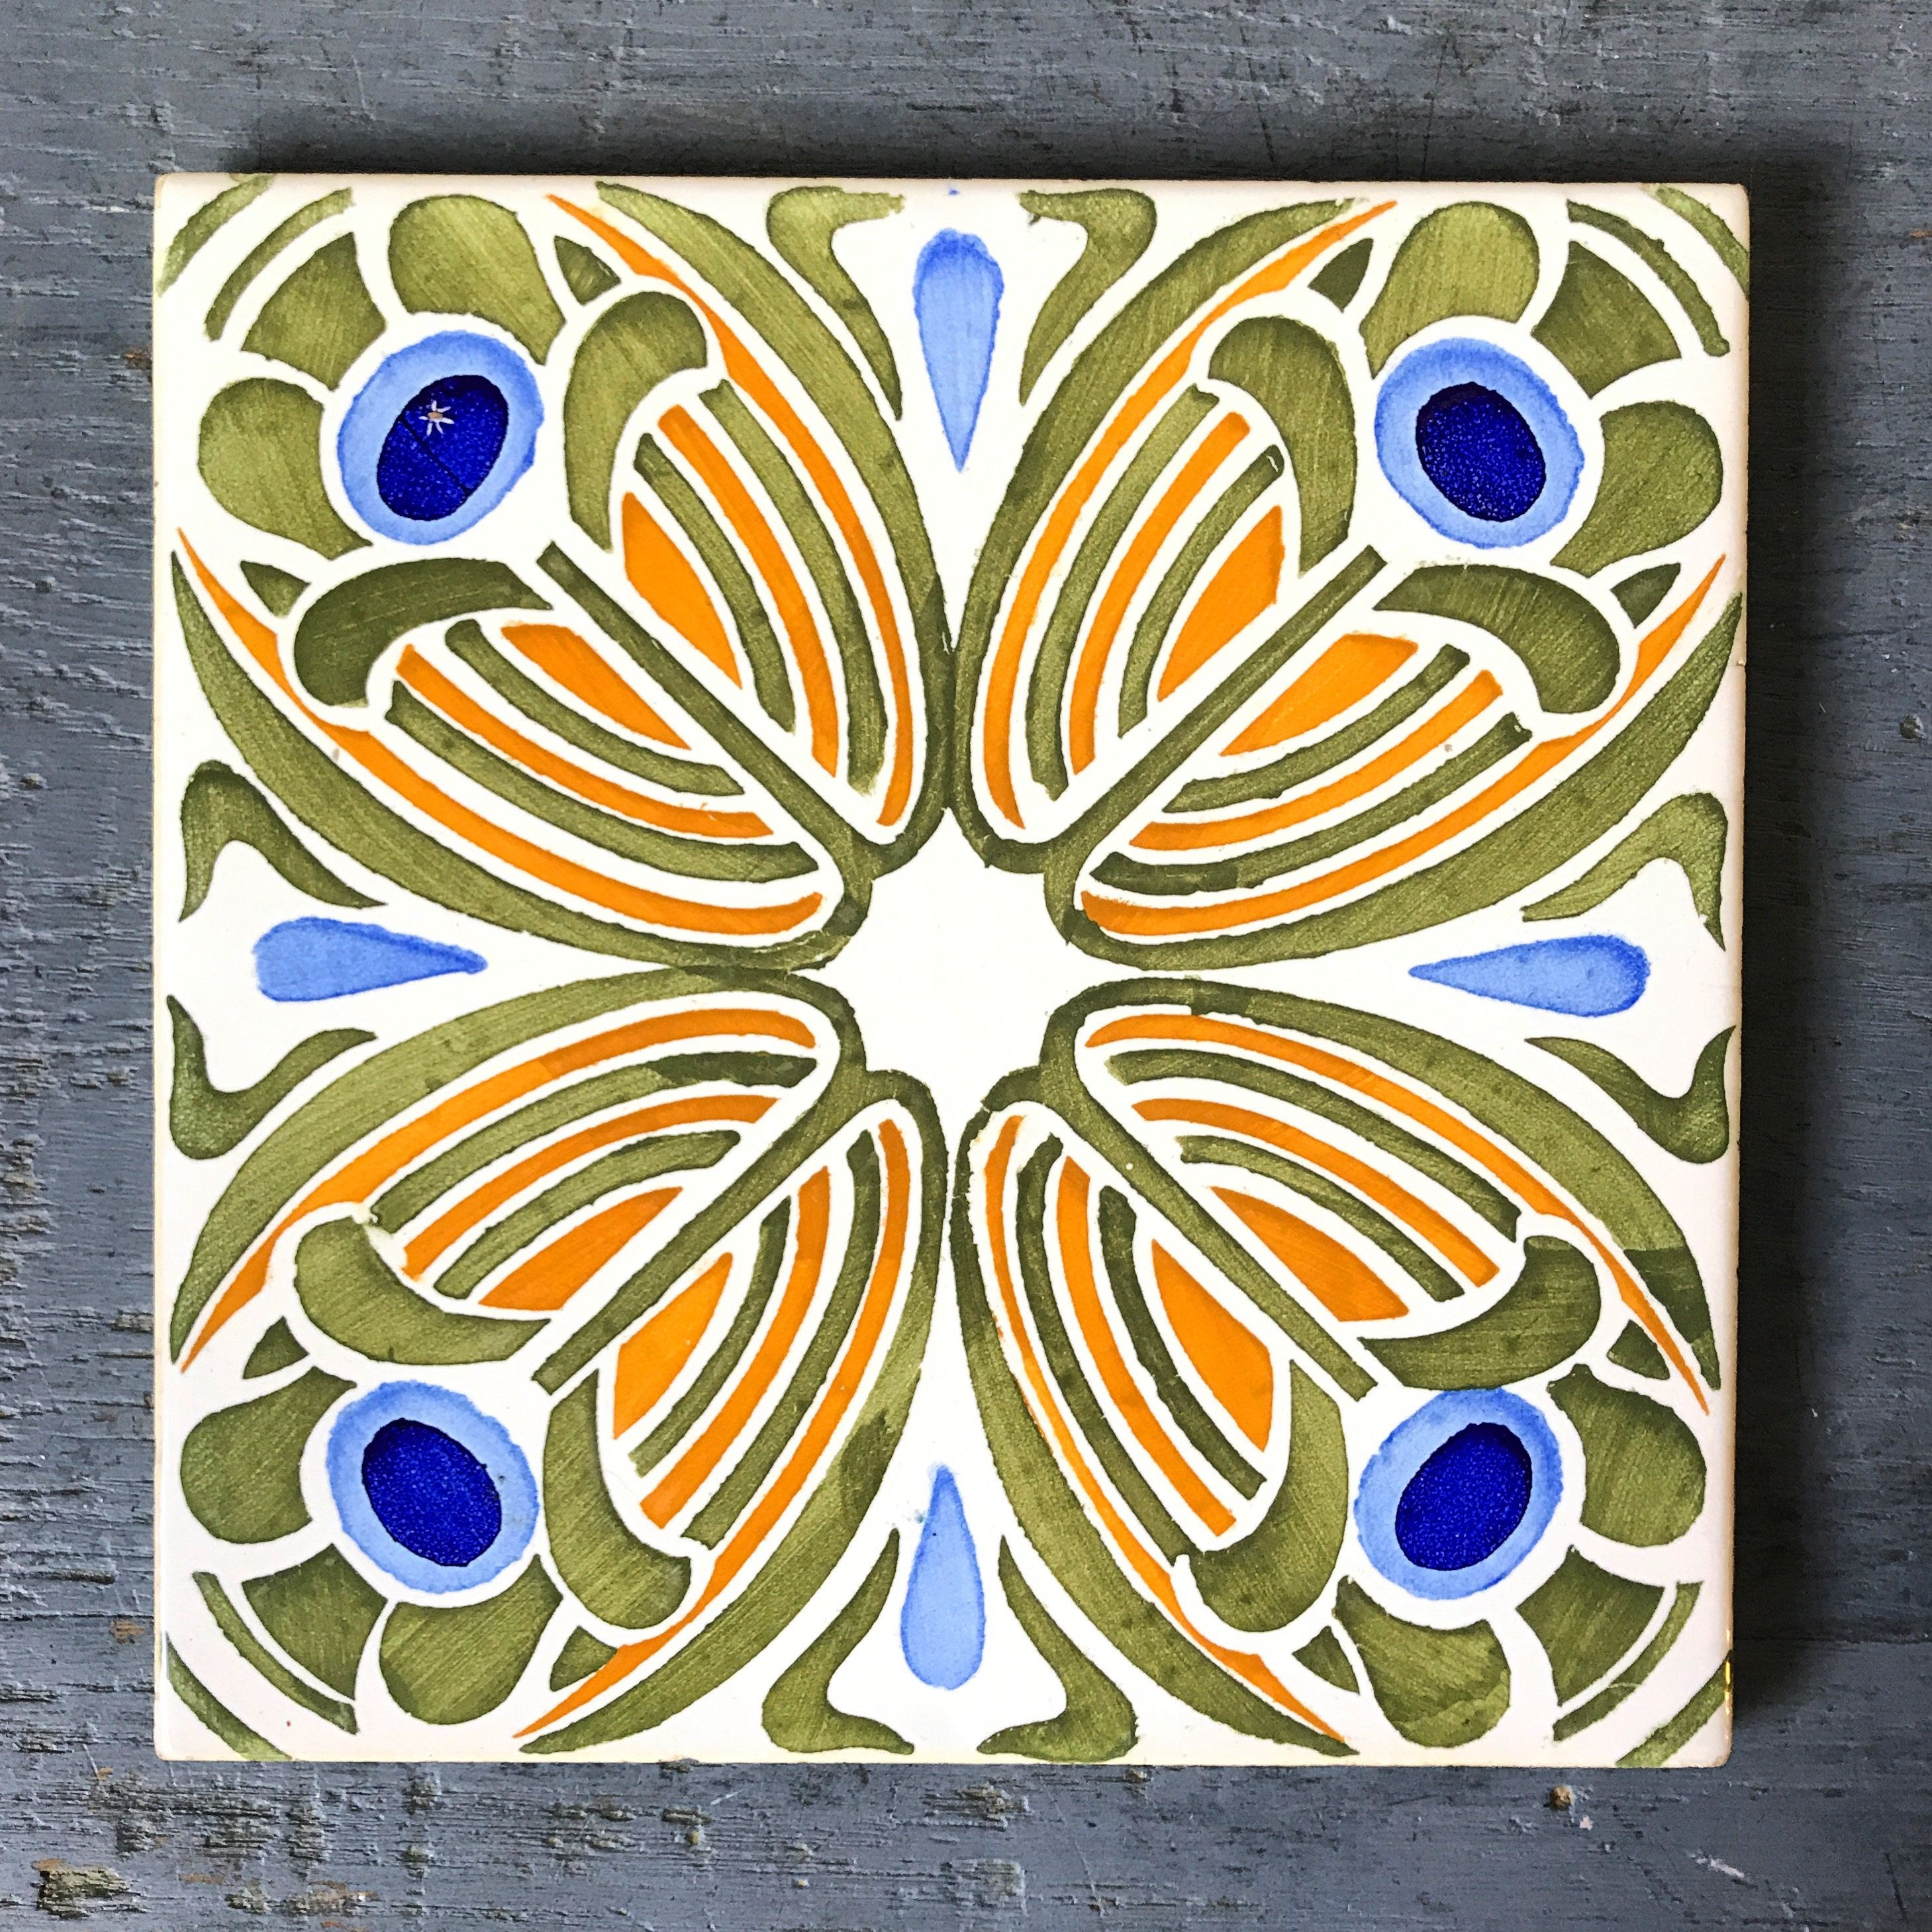 Vintage decorative tile hand painted ceramic trivet art nouveau vintage decorative tile hand painted ceramic trivet art nouveau flower orange blue green dailygadgetfo Image collections